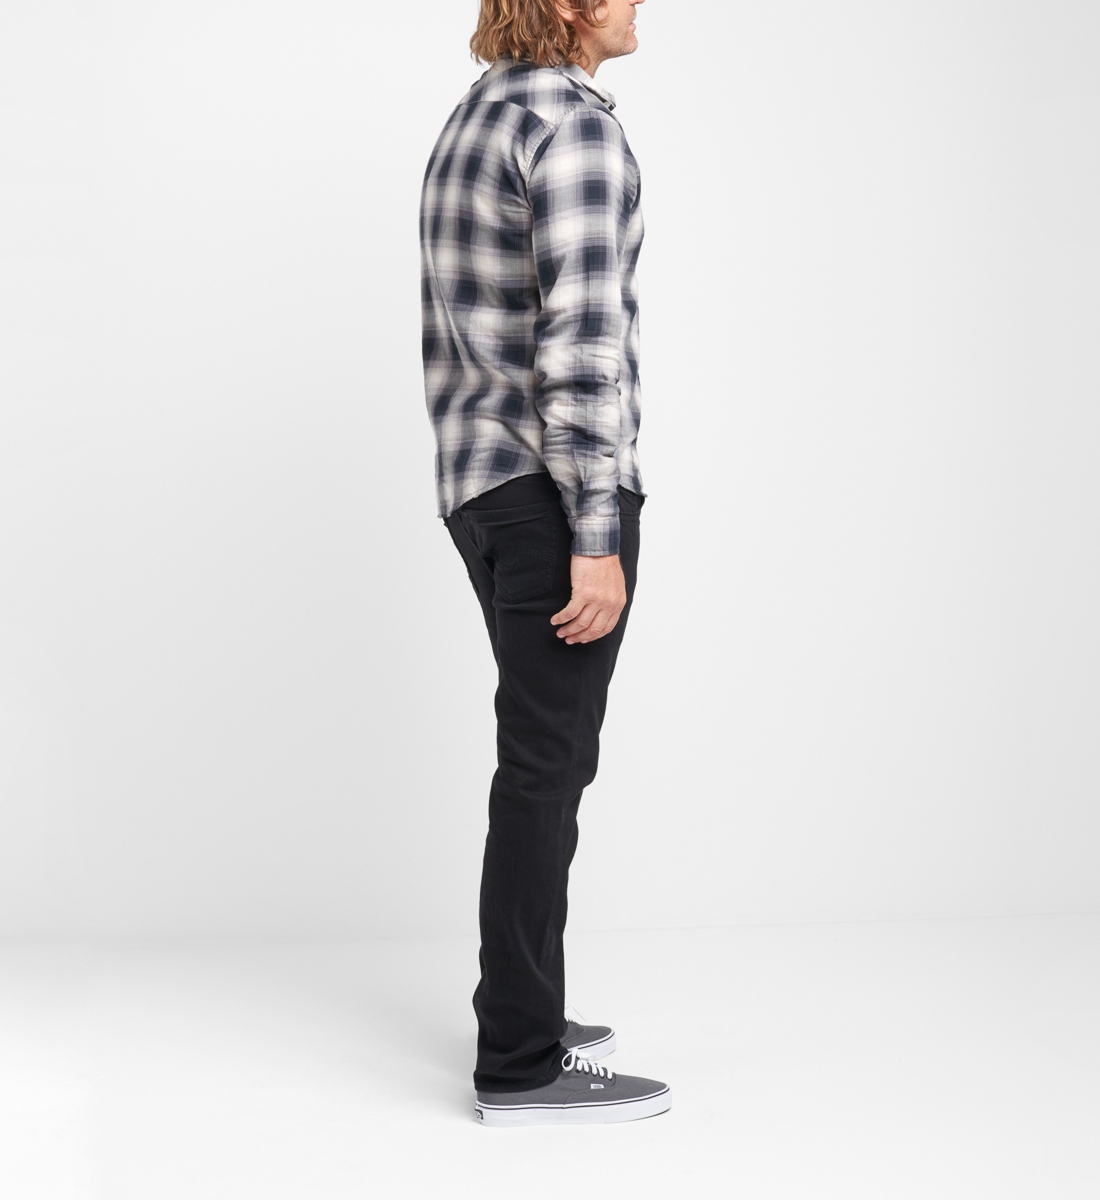 Bennet Plaid Button-Down Shirt Alt Image 1